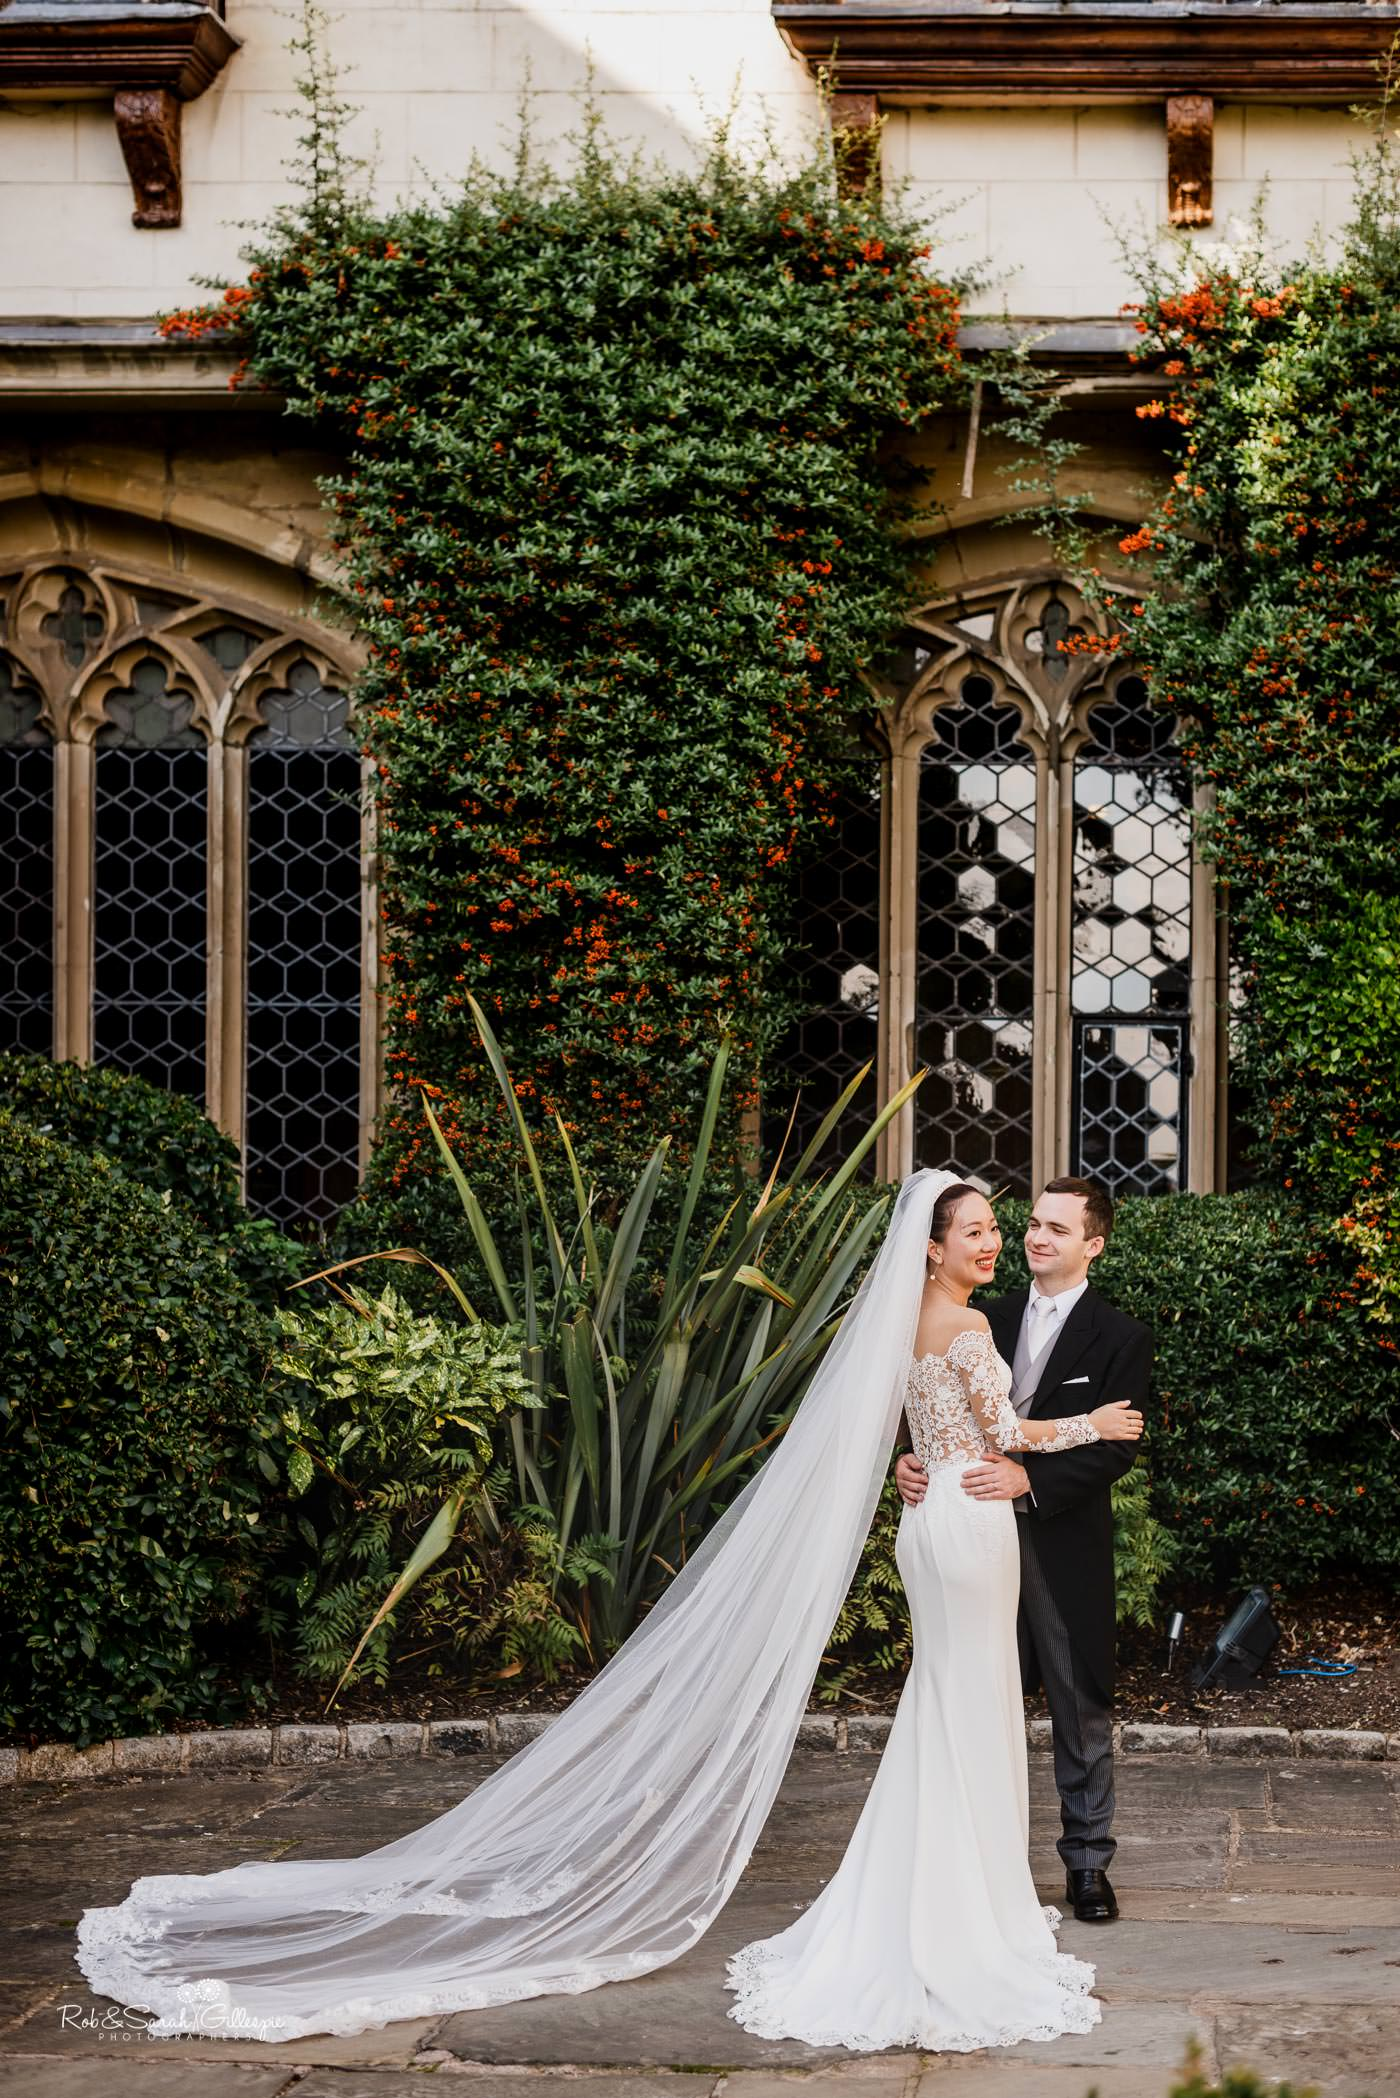 Bride and groom photos at Coombe Abbey